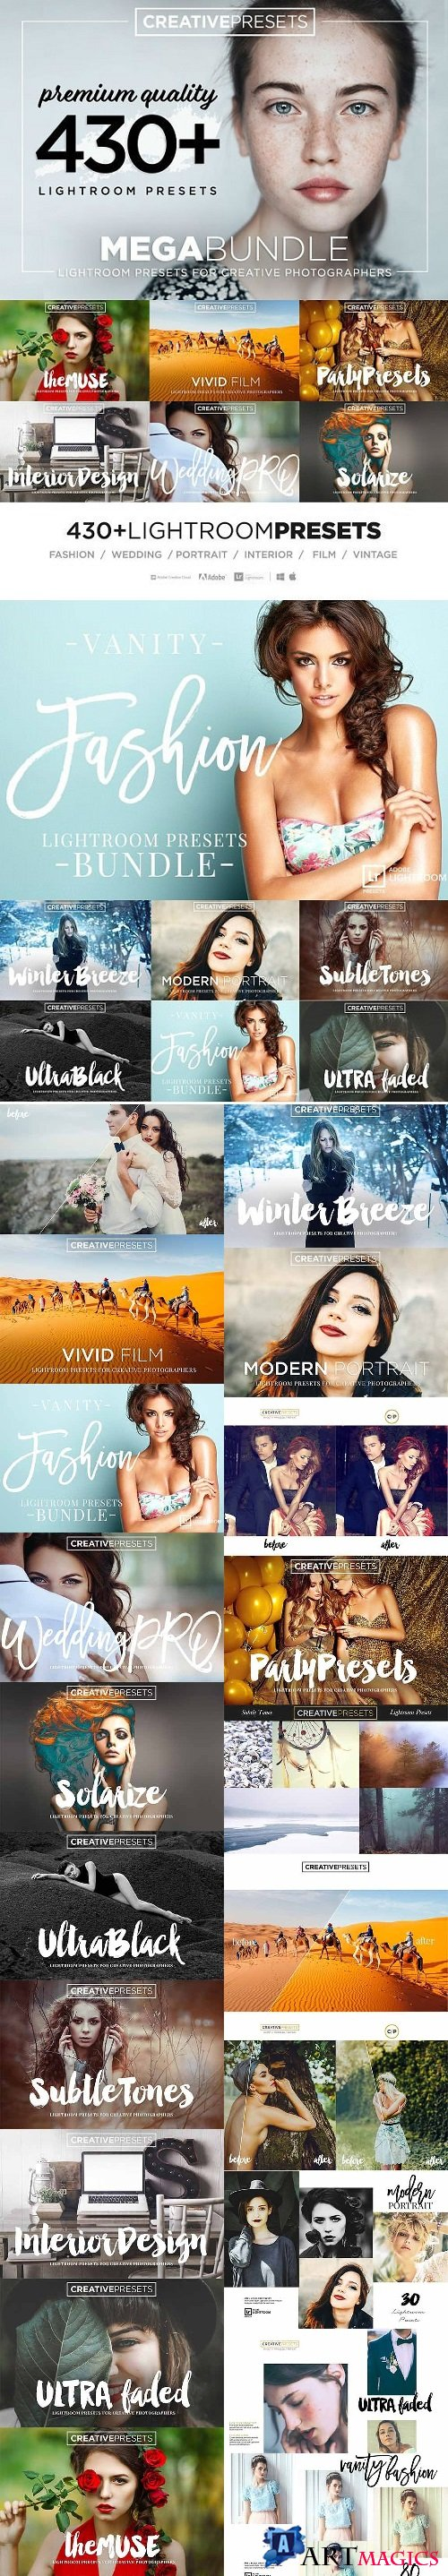 430+ LIGHTROOM PRESETS BUNDLE 2210409